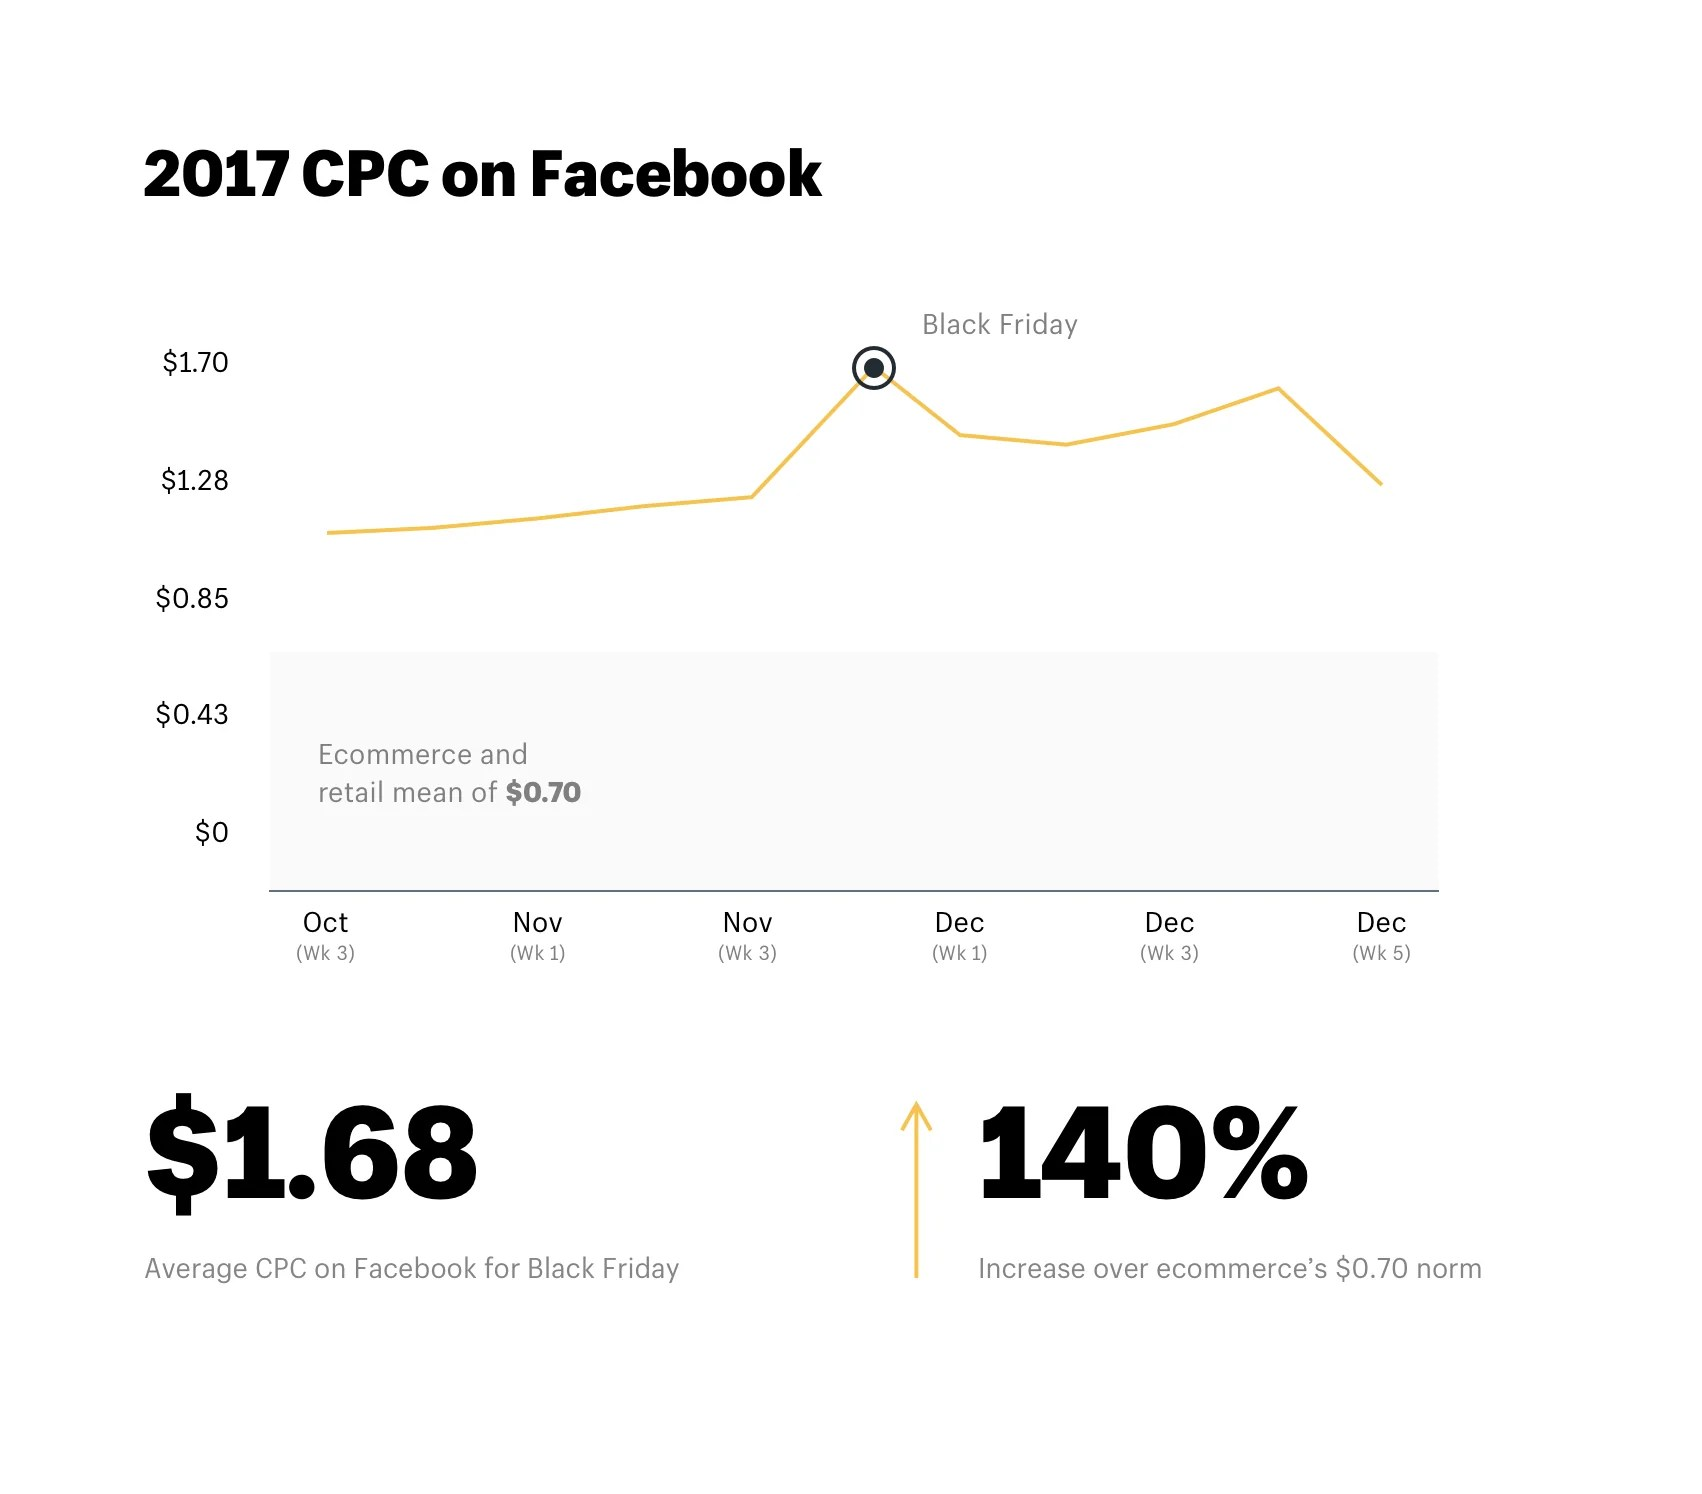 hight resolution of 2017 cpc on facebook during black friday and q4